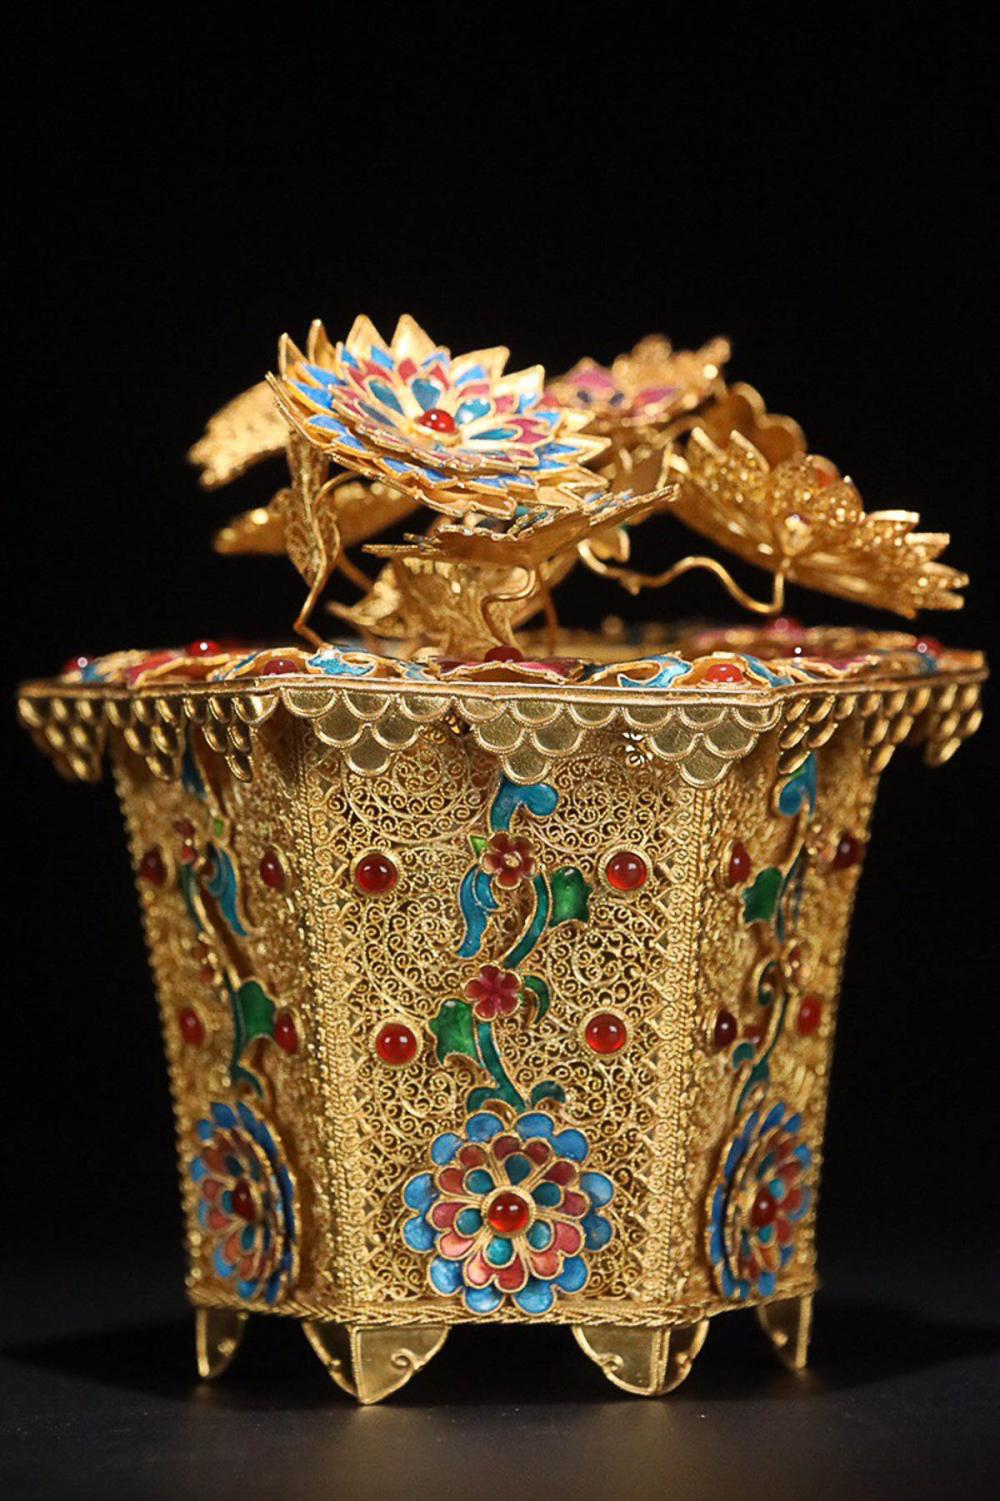 A FLORAL DESIGN GILT SILVER ENAMEL BONSAI